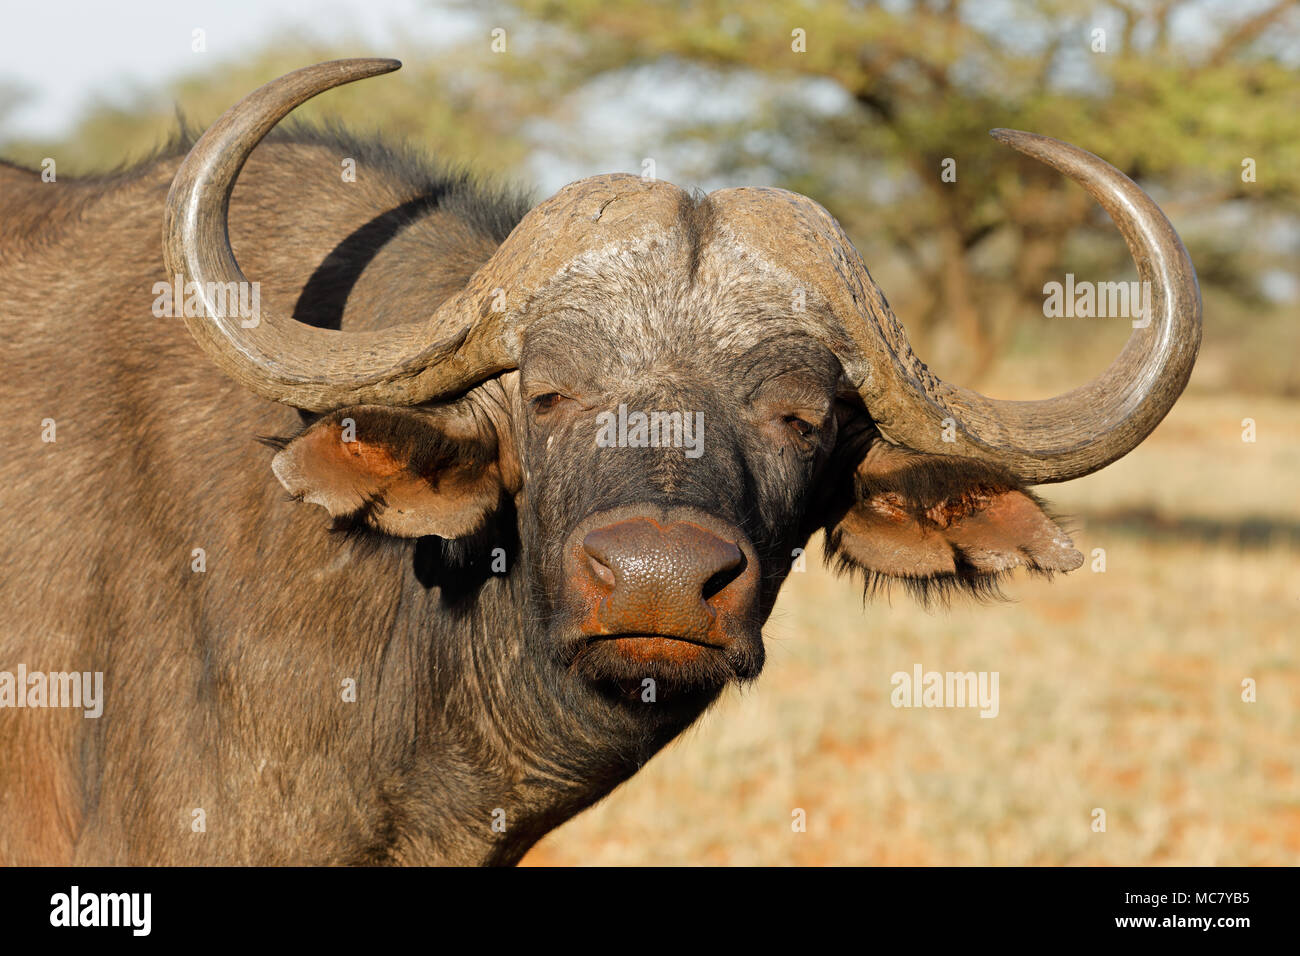 Portrait of an African or Cape buffalo (Syncerus caffer), Mokala National park, South Africa - Stock Image